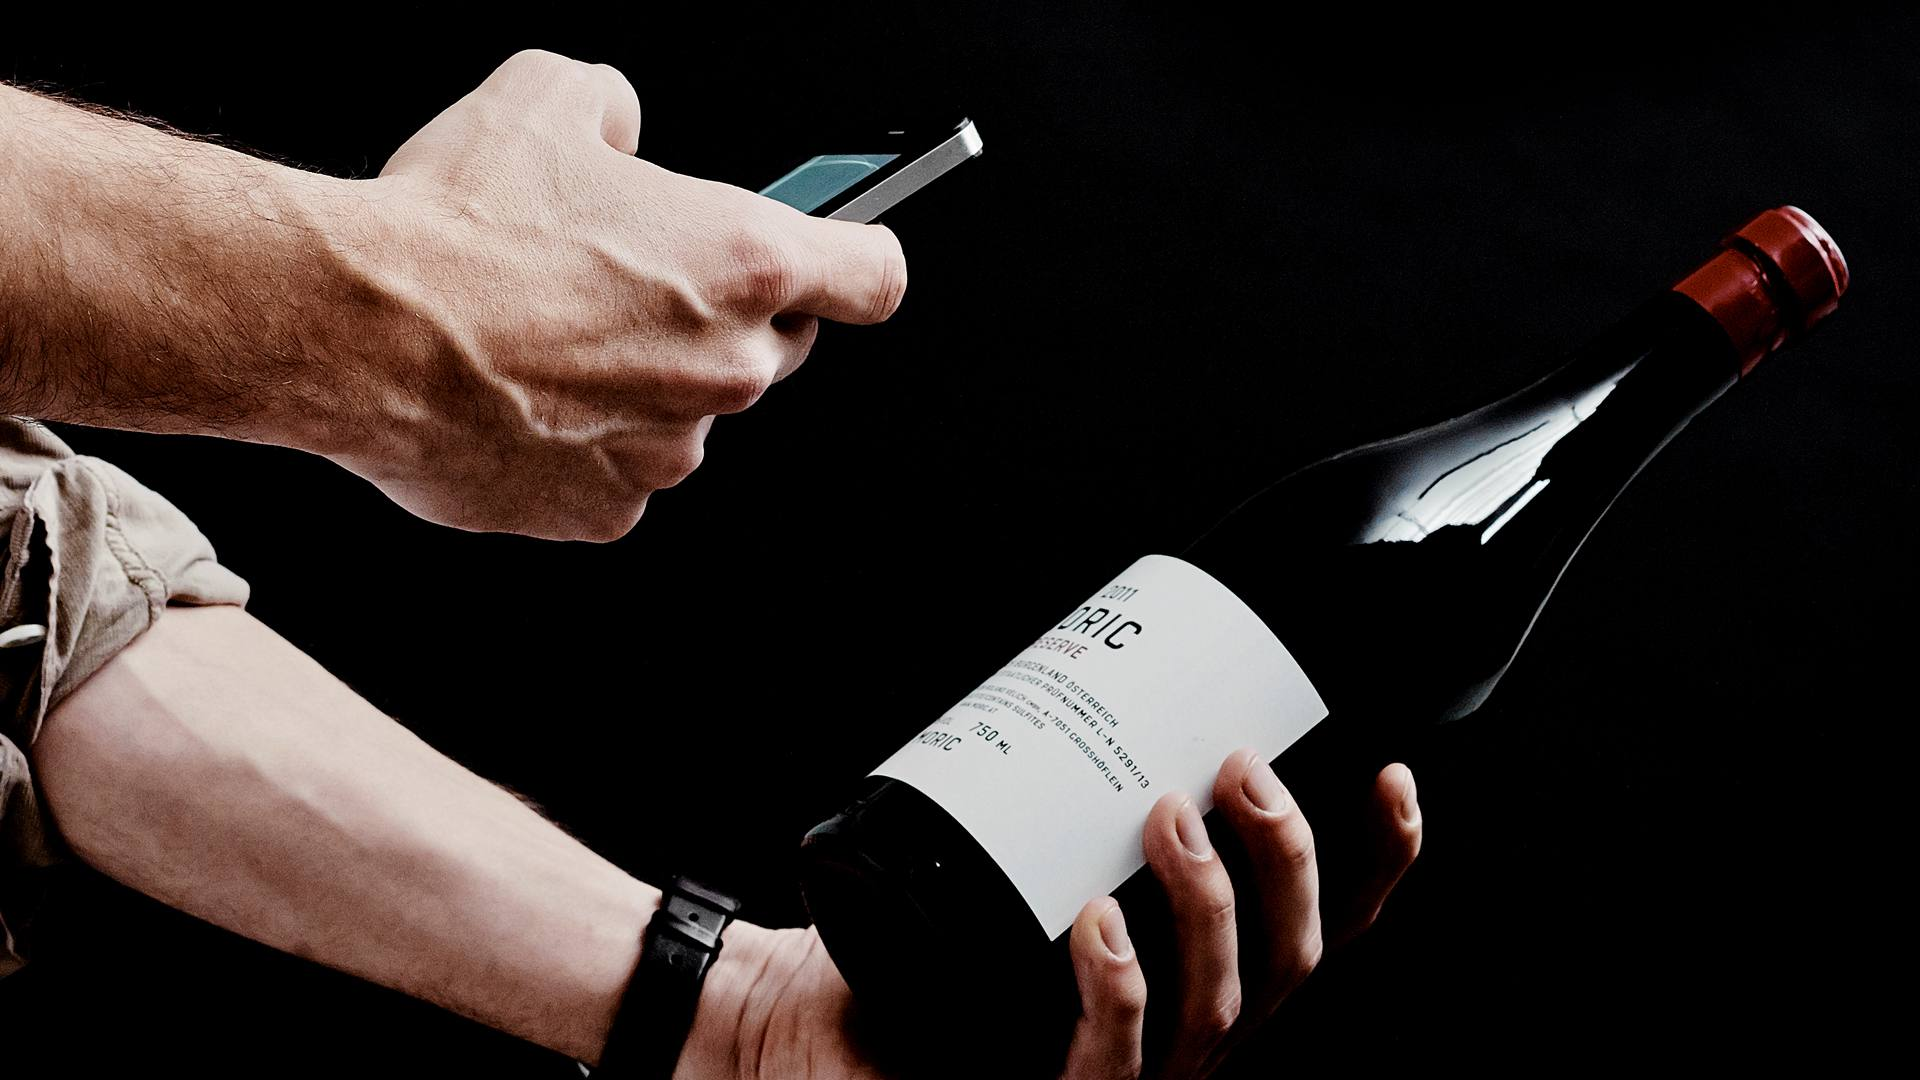 The Vivino Vivino wine app being used on an iPhone to scan a wine bottle label.